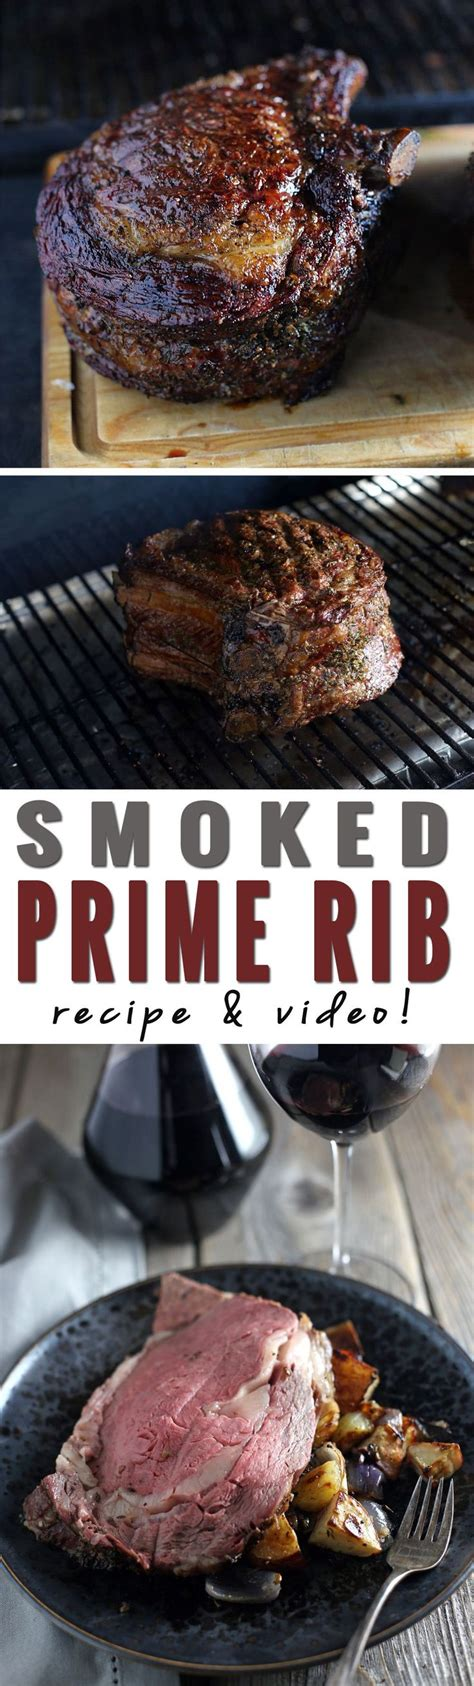 25 best ideas about smokers on pinterest electric meat smokers electric smoker recipes and